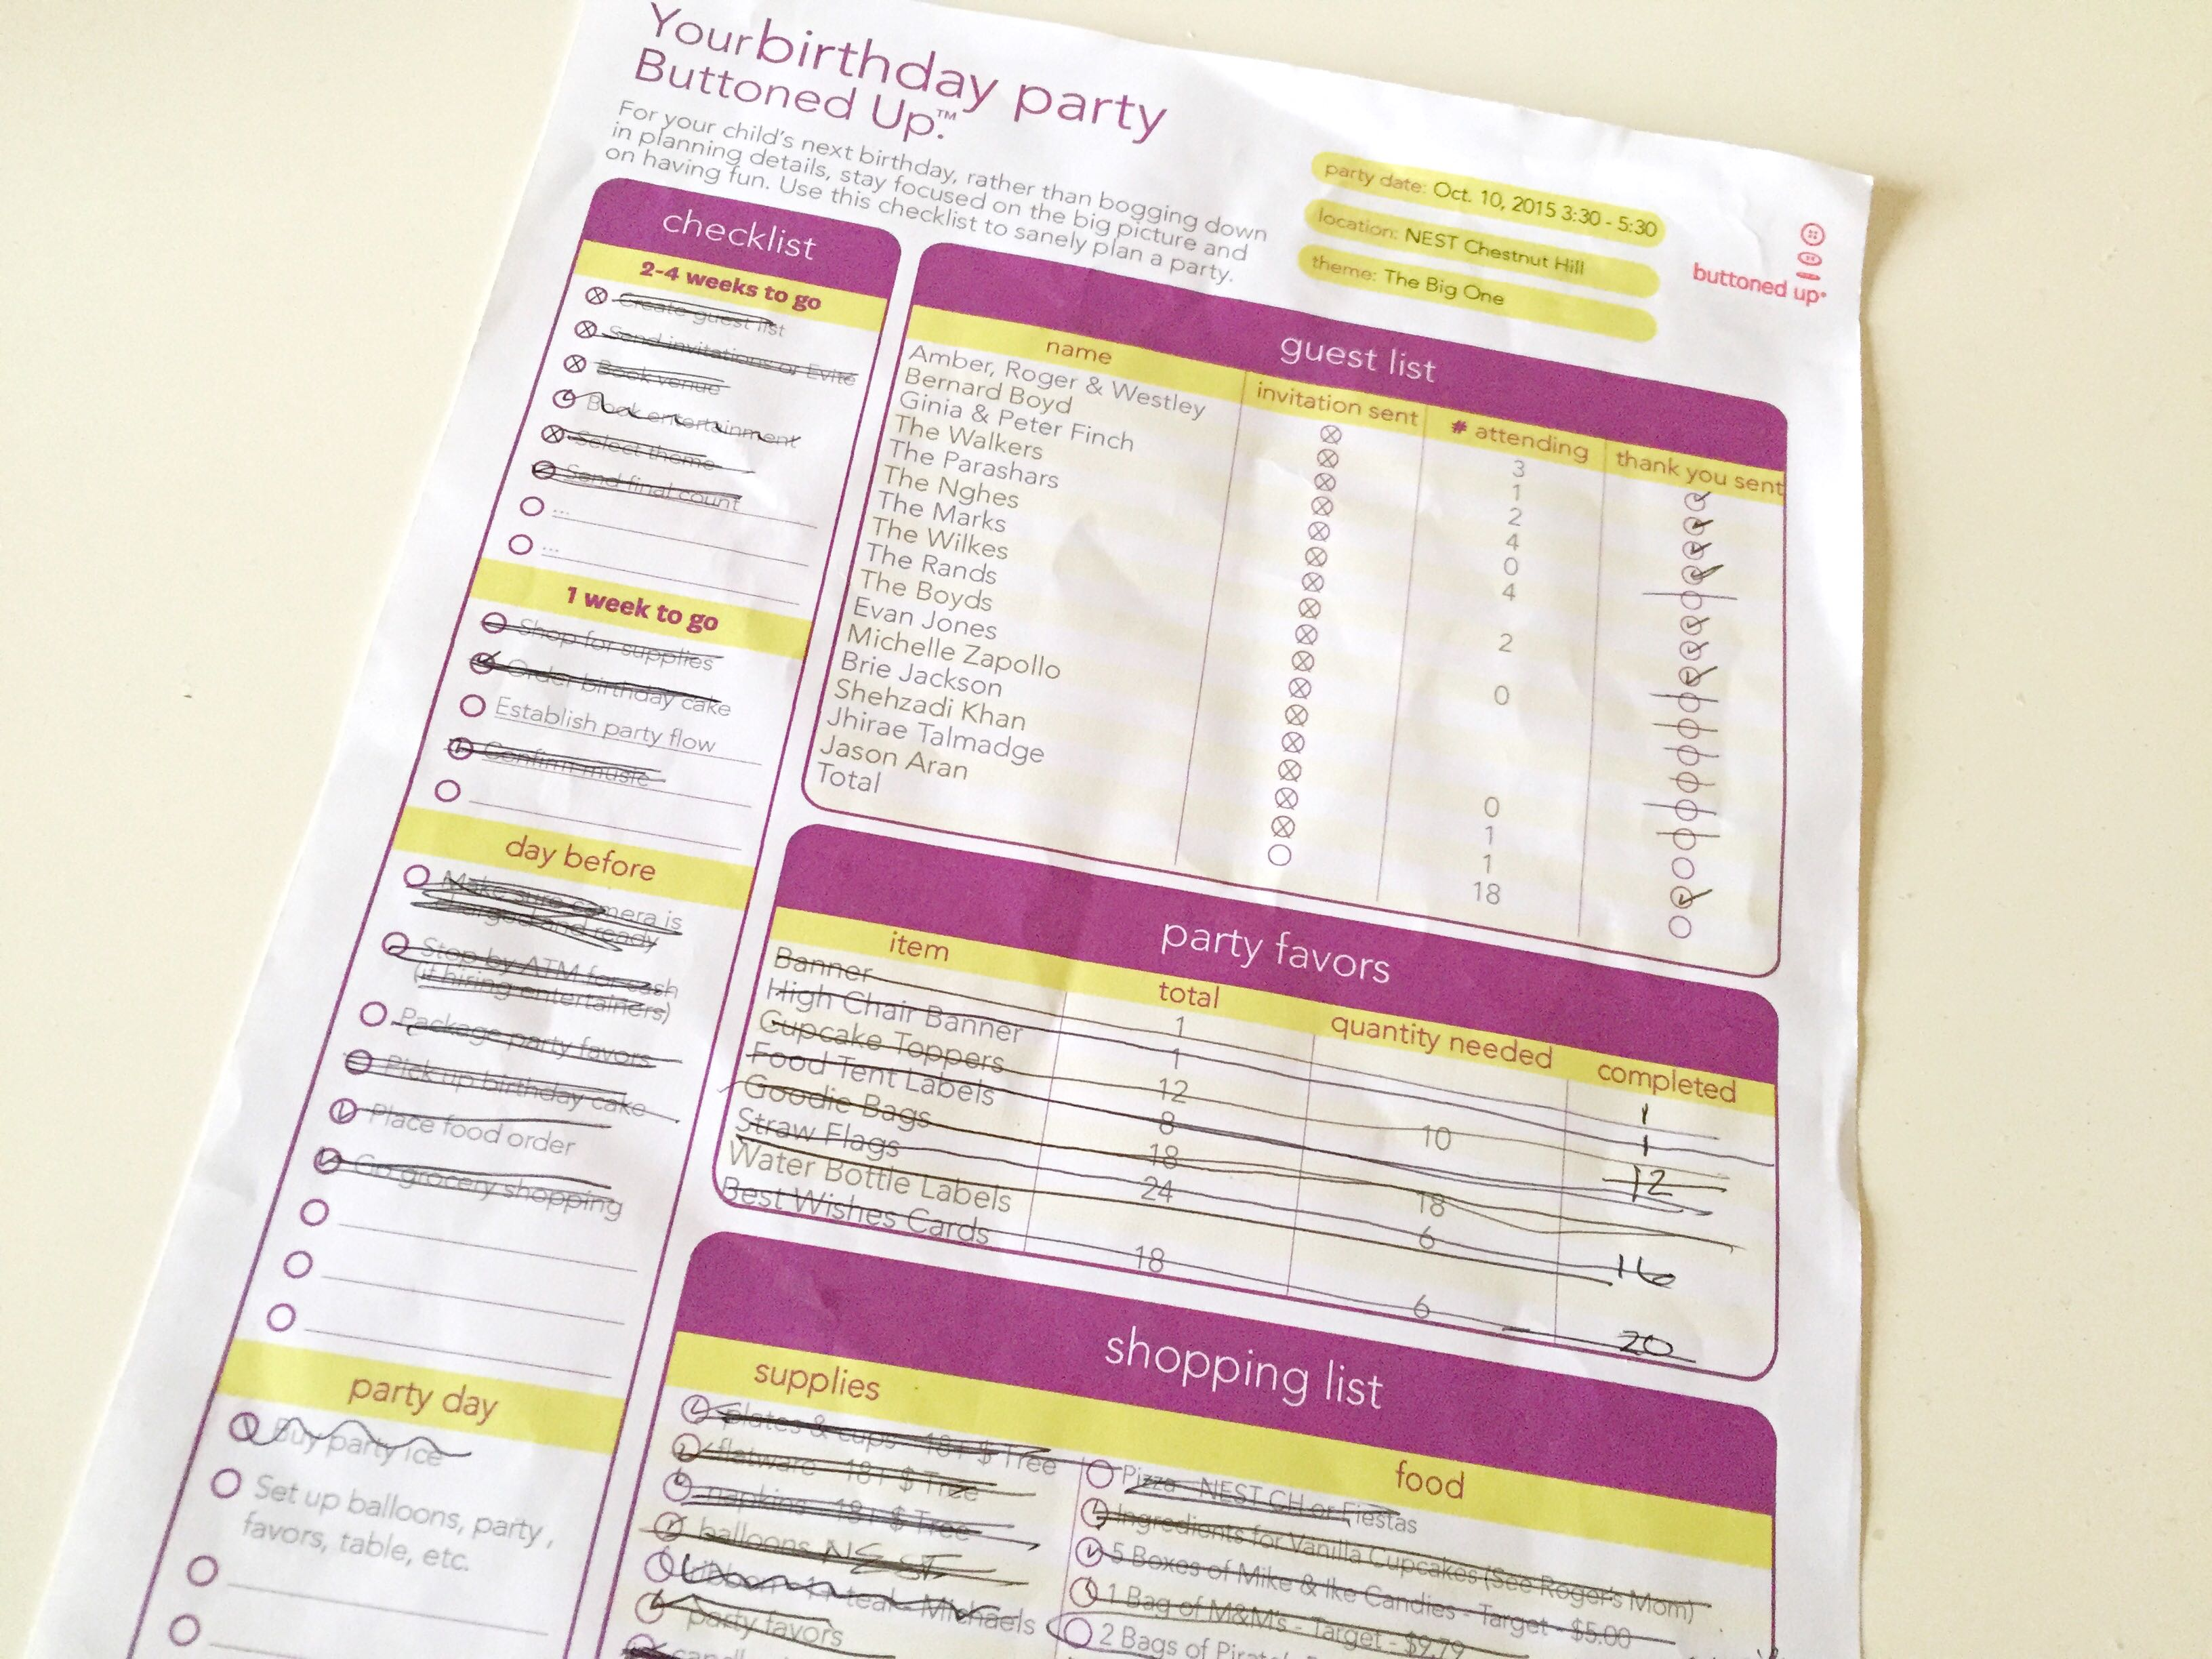 Your First Birthday Party Checklist from Get Buttoned Up